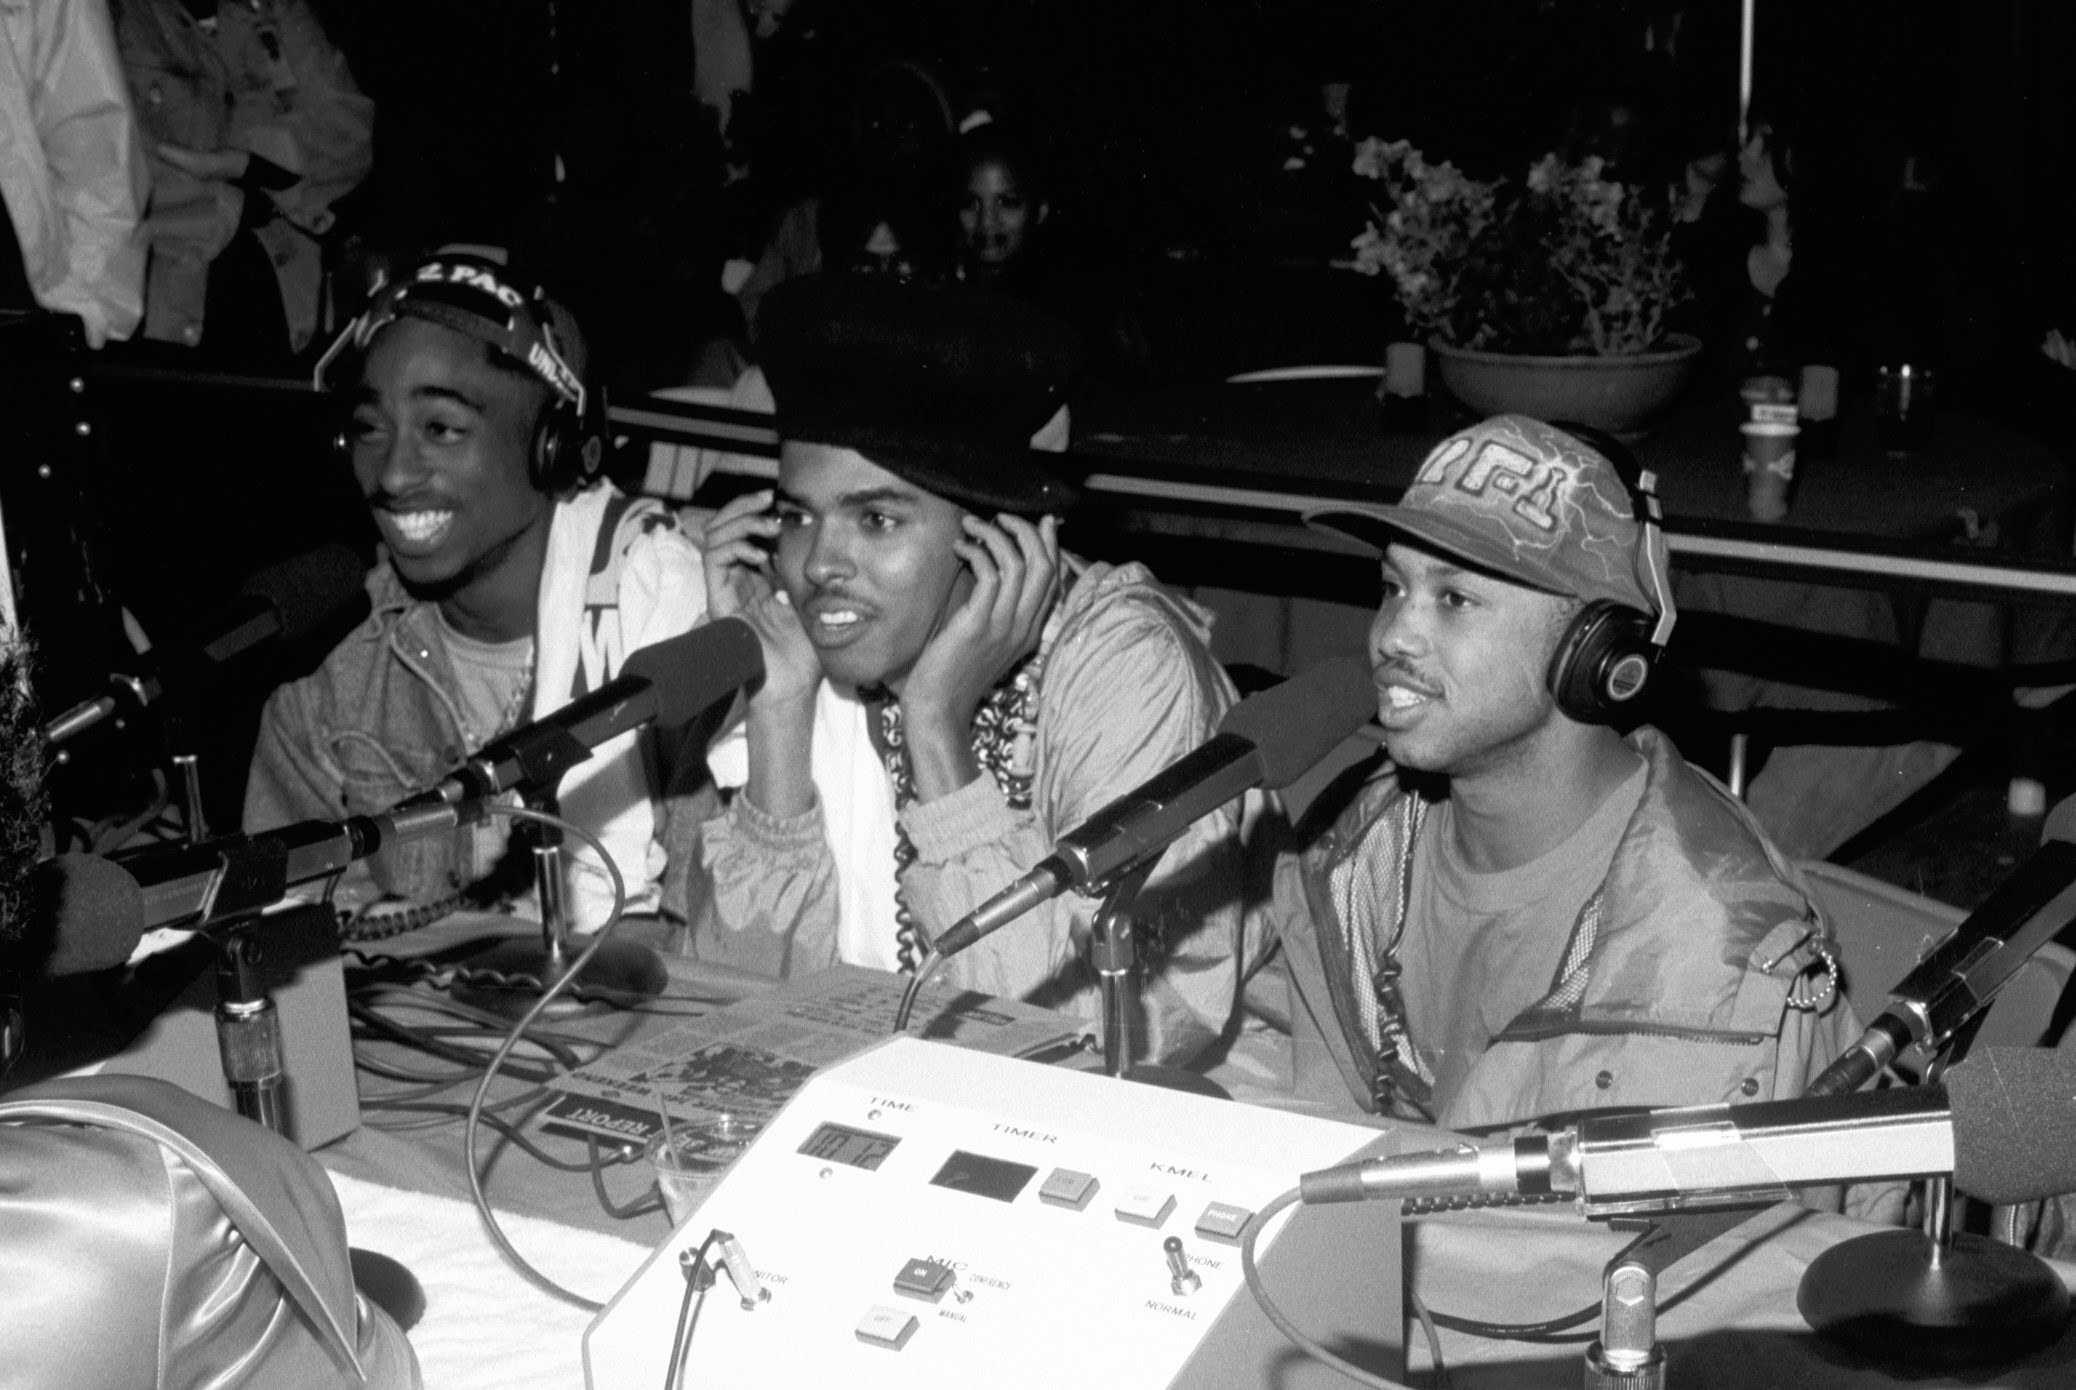 Three men smile and lean forward to talk into microphones